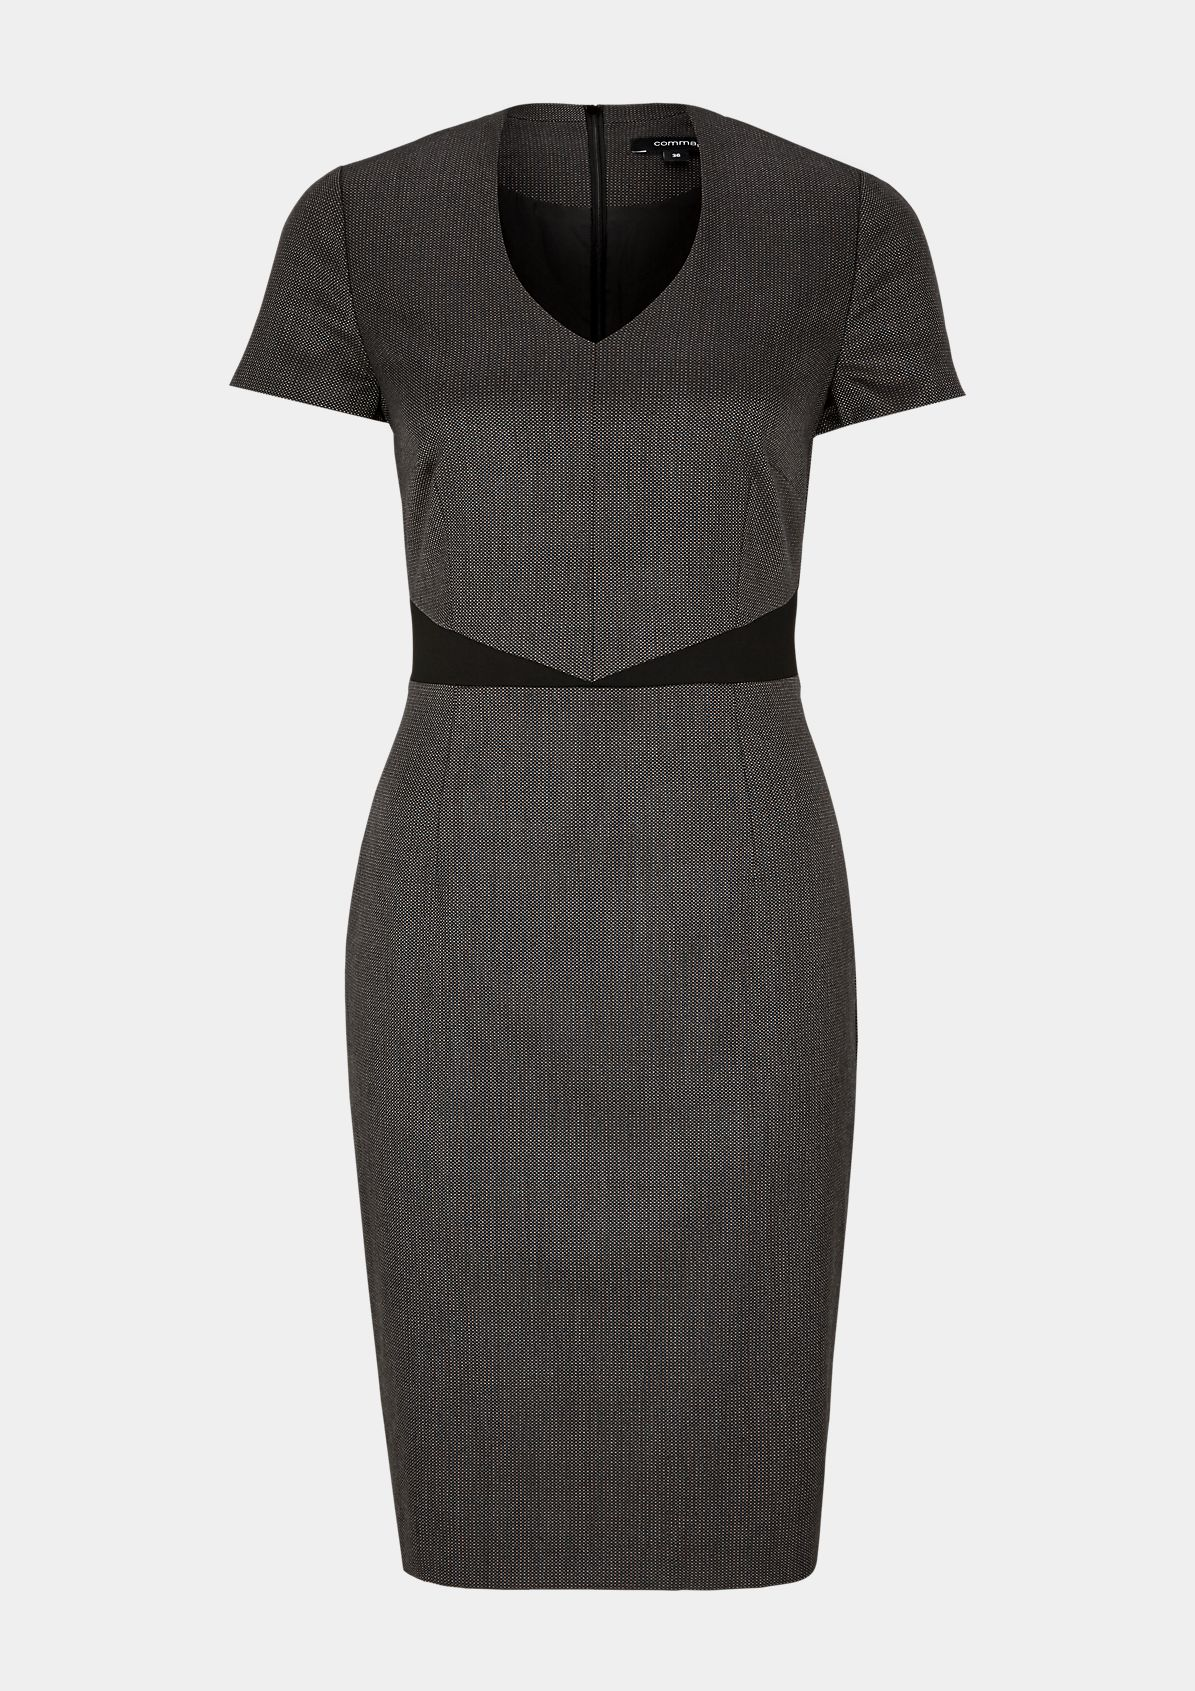 Sheath dress with a smart minimalist pattern from comma